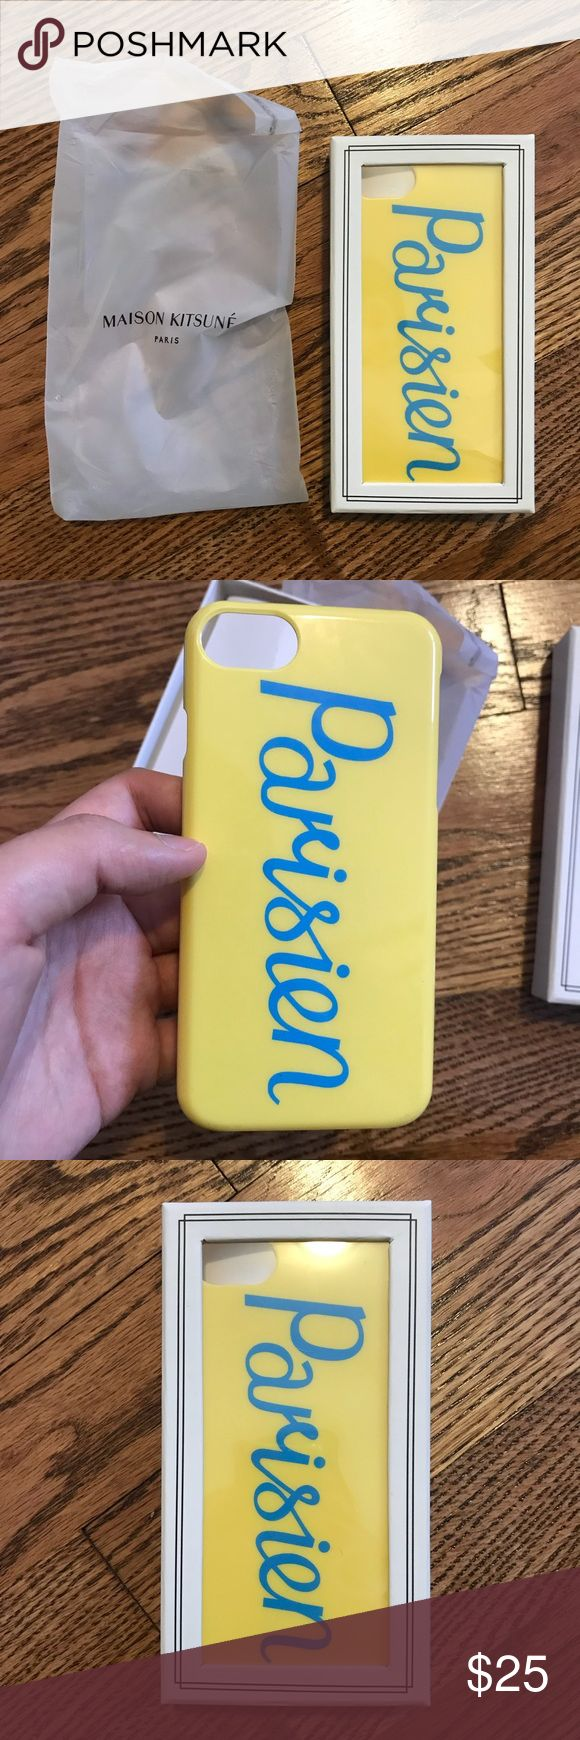 Maison kitsune iphone 7 parisien case Yellow Parisien print iPhone 7 case from Maison Kitsuné. Colour: GIALLO Imported Outer Composition: polycarbonite 100% See photos for condition. Few scratches on the corners Original price $48 MAISON KITSUNE Accessories Phone Cases